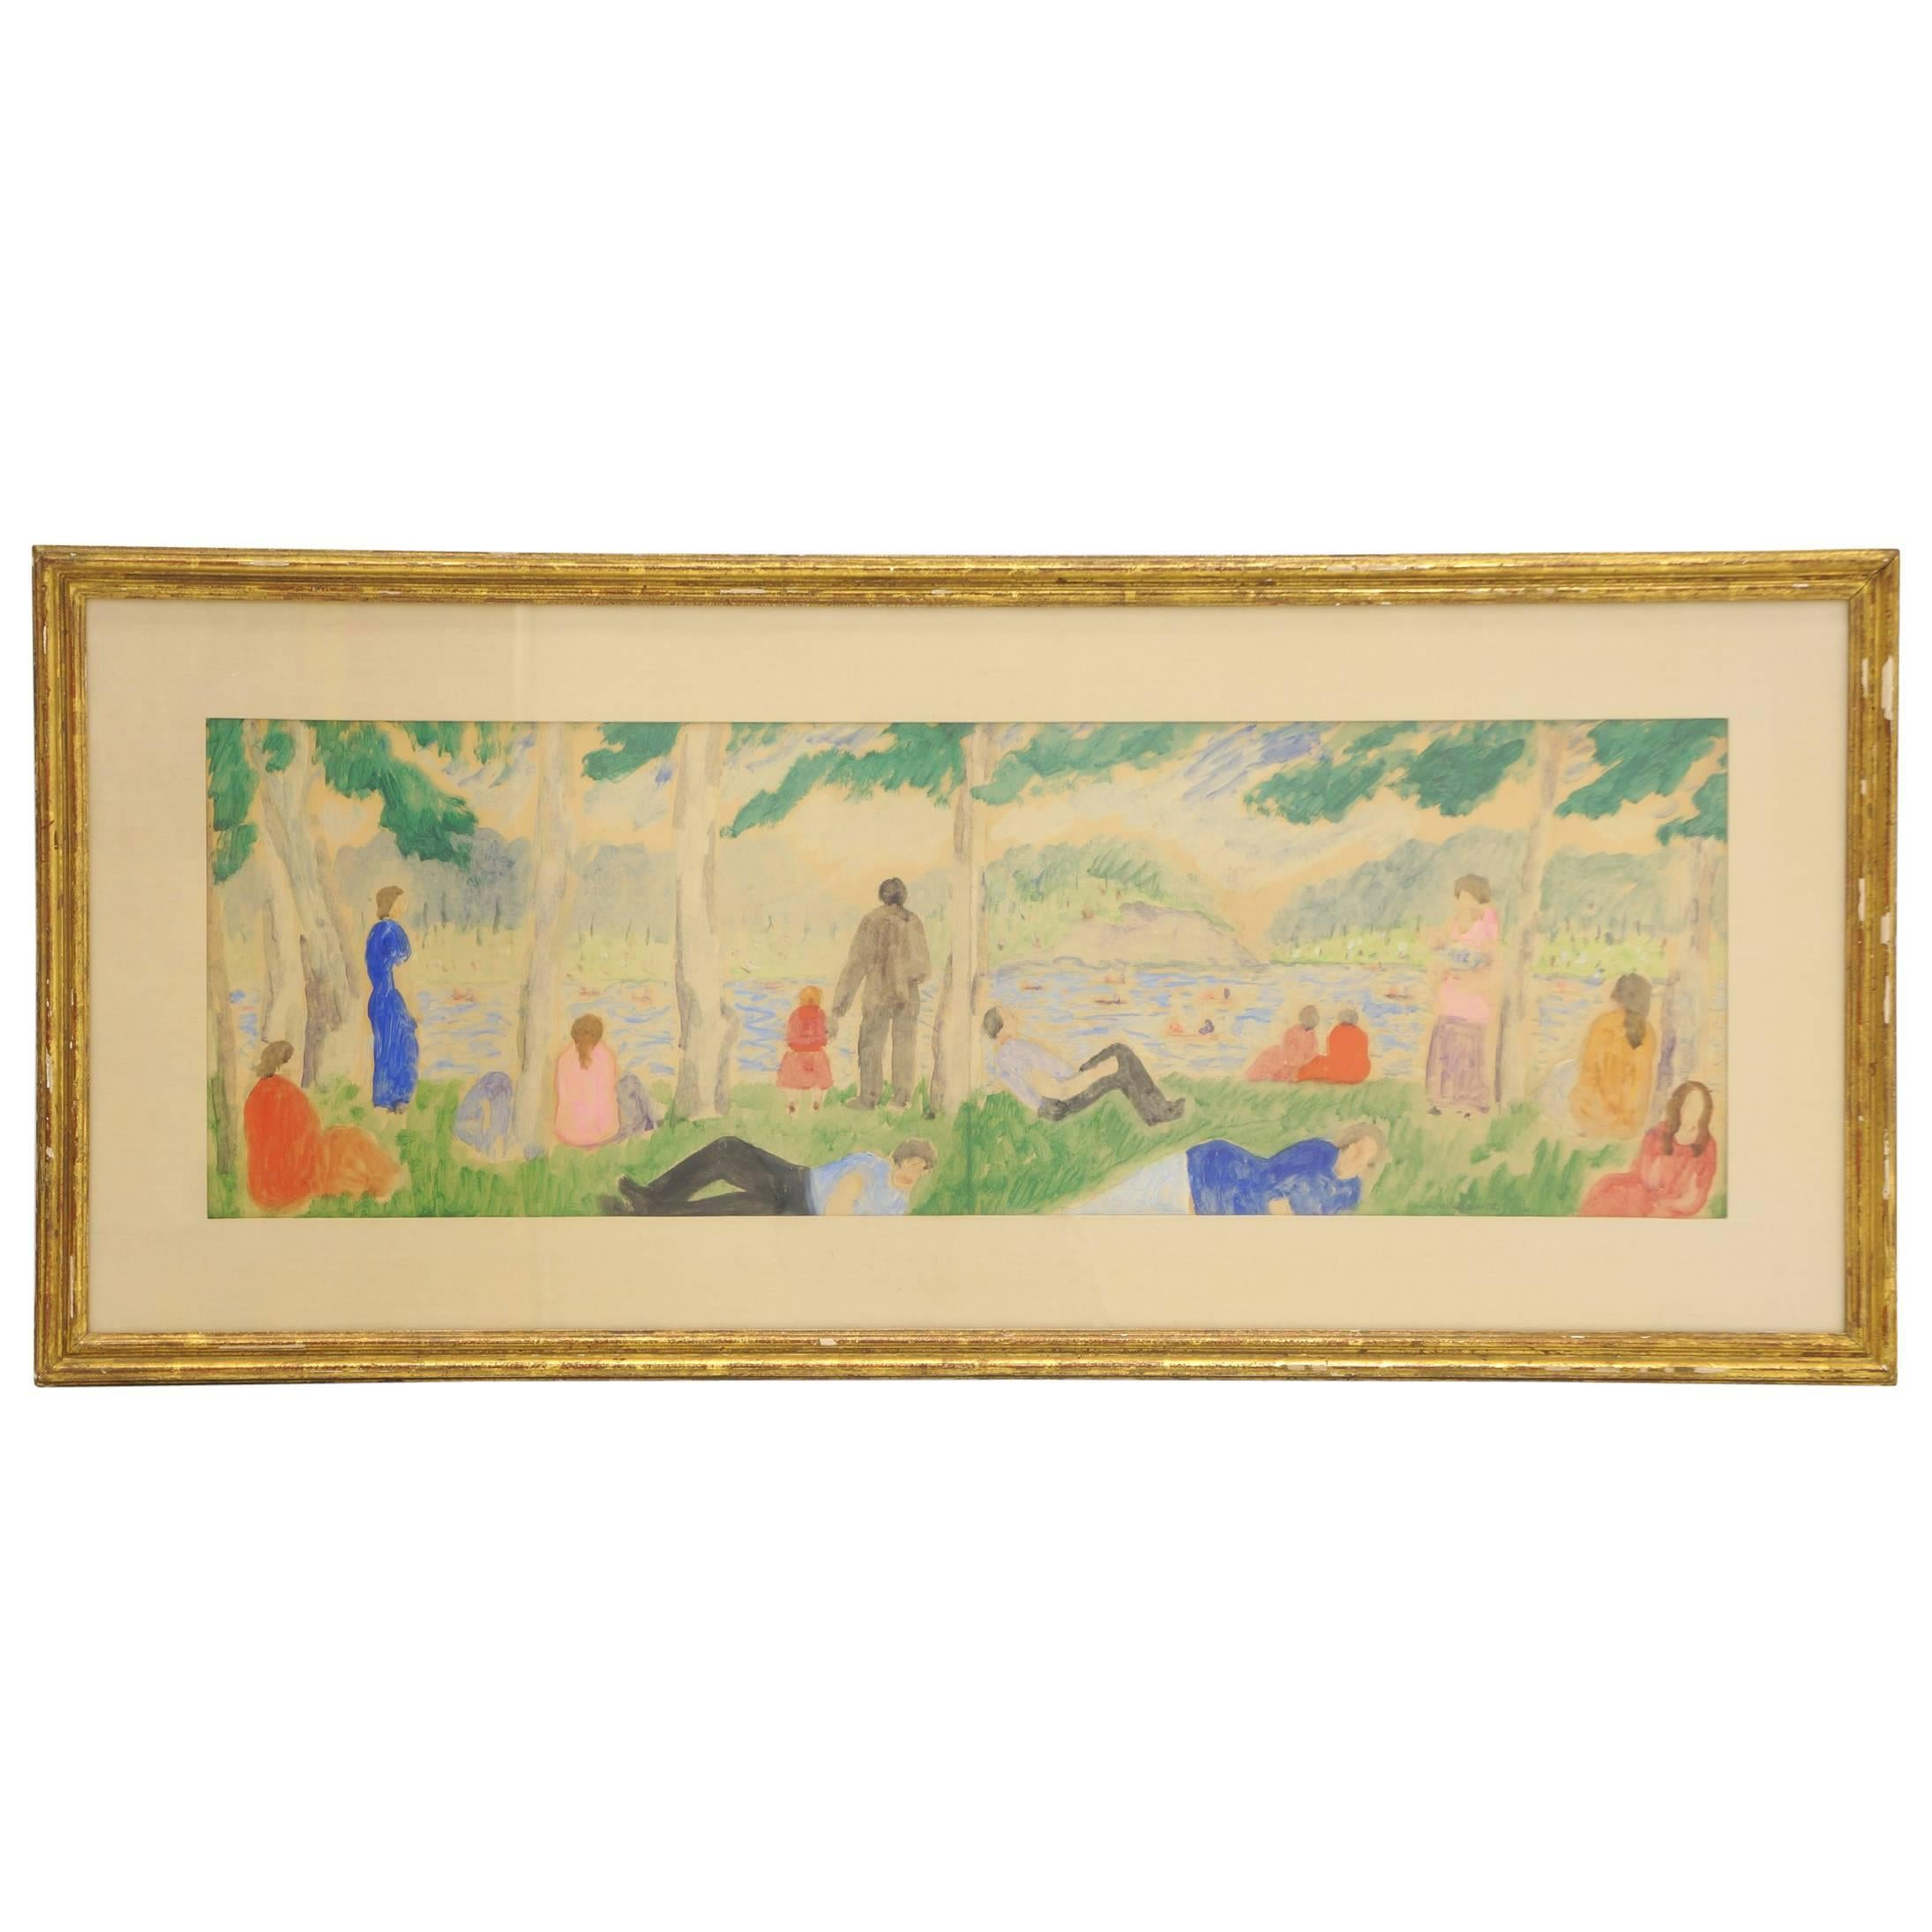 Watercolor by Abraham Walkowitz, Title Bathers on Grassy Shore, circa 1920-1925